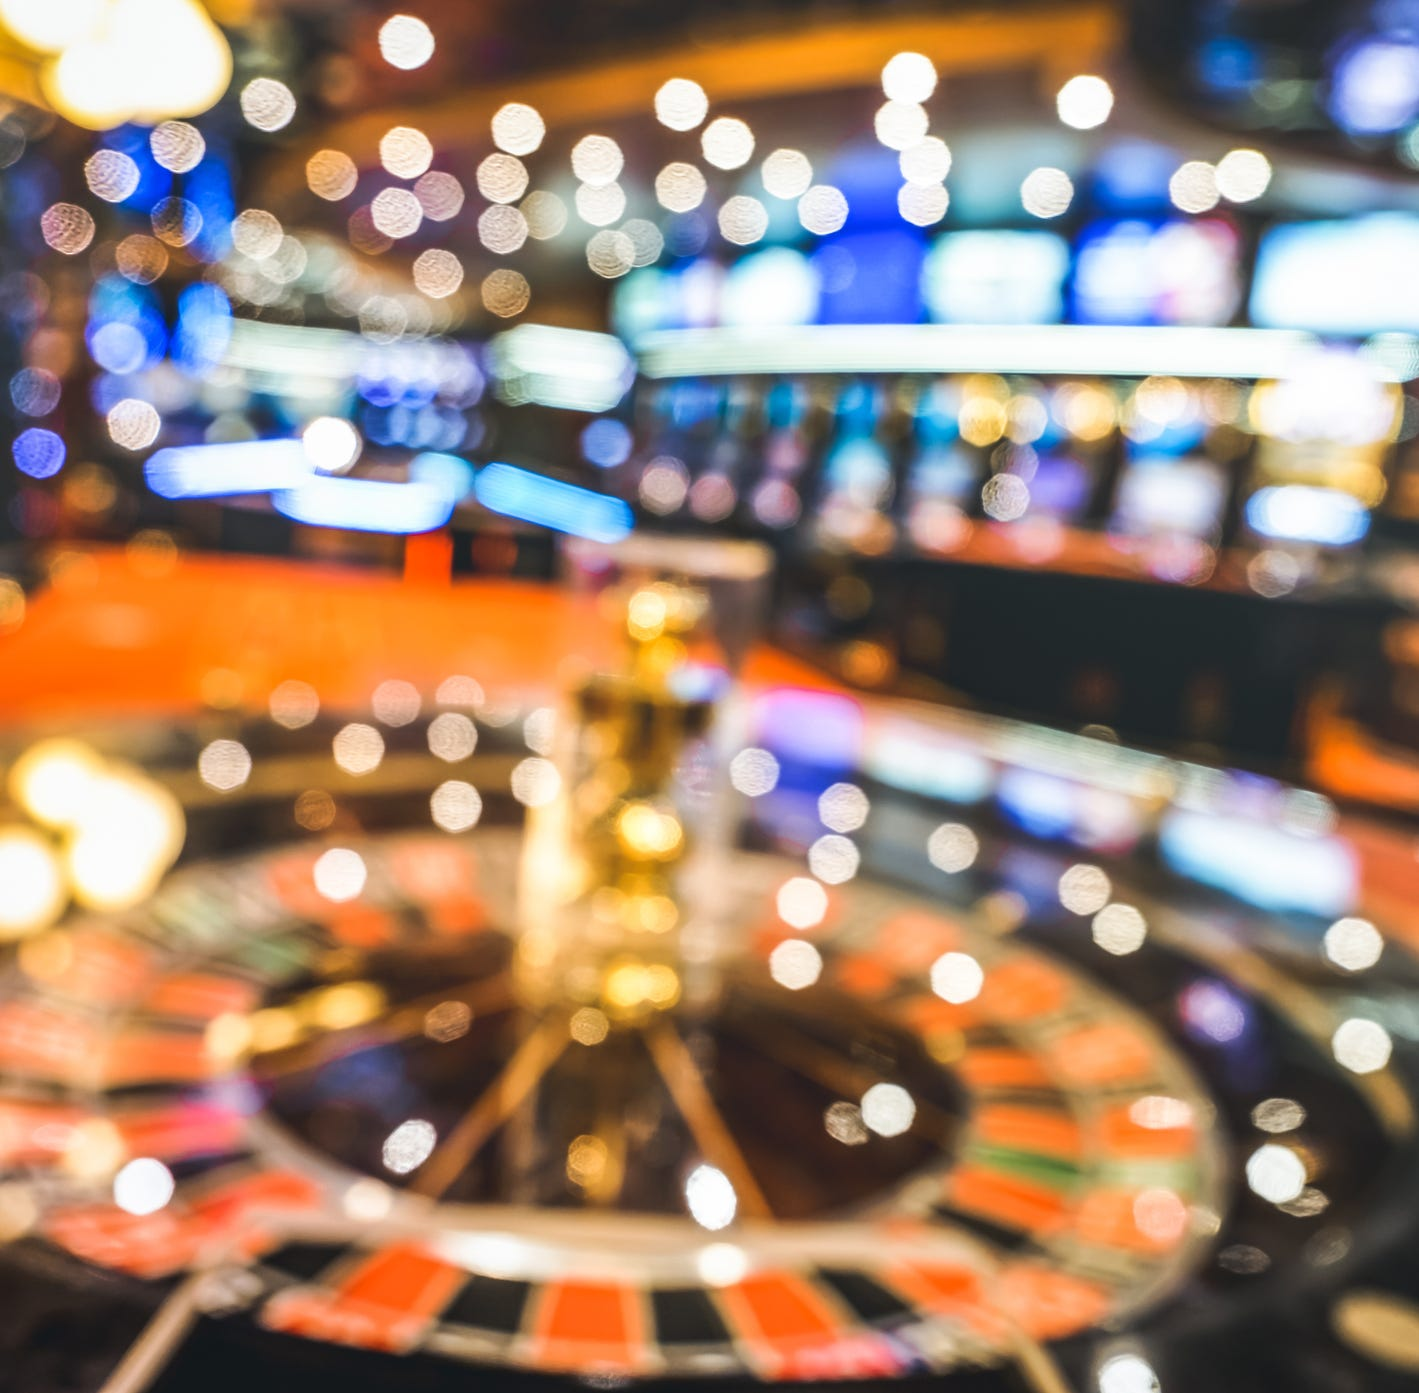 Some say legalizing casinos in Kentucky could help fund pensions.